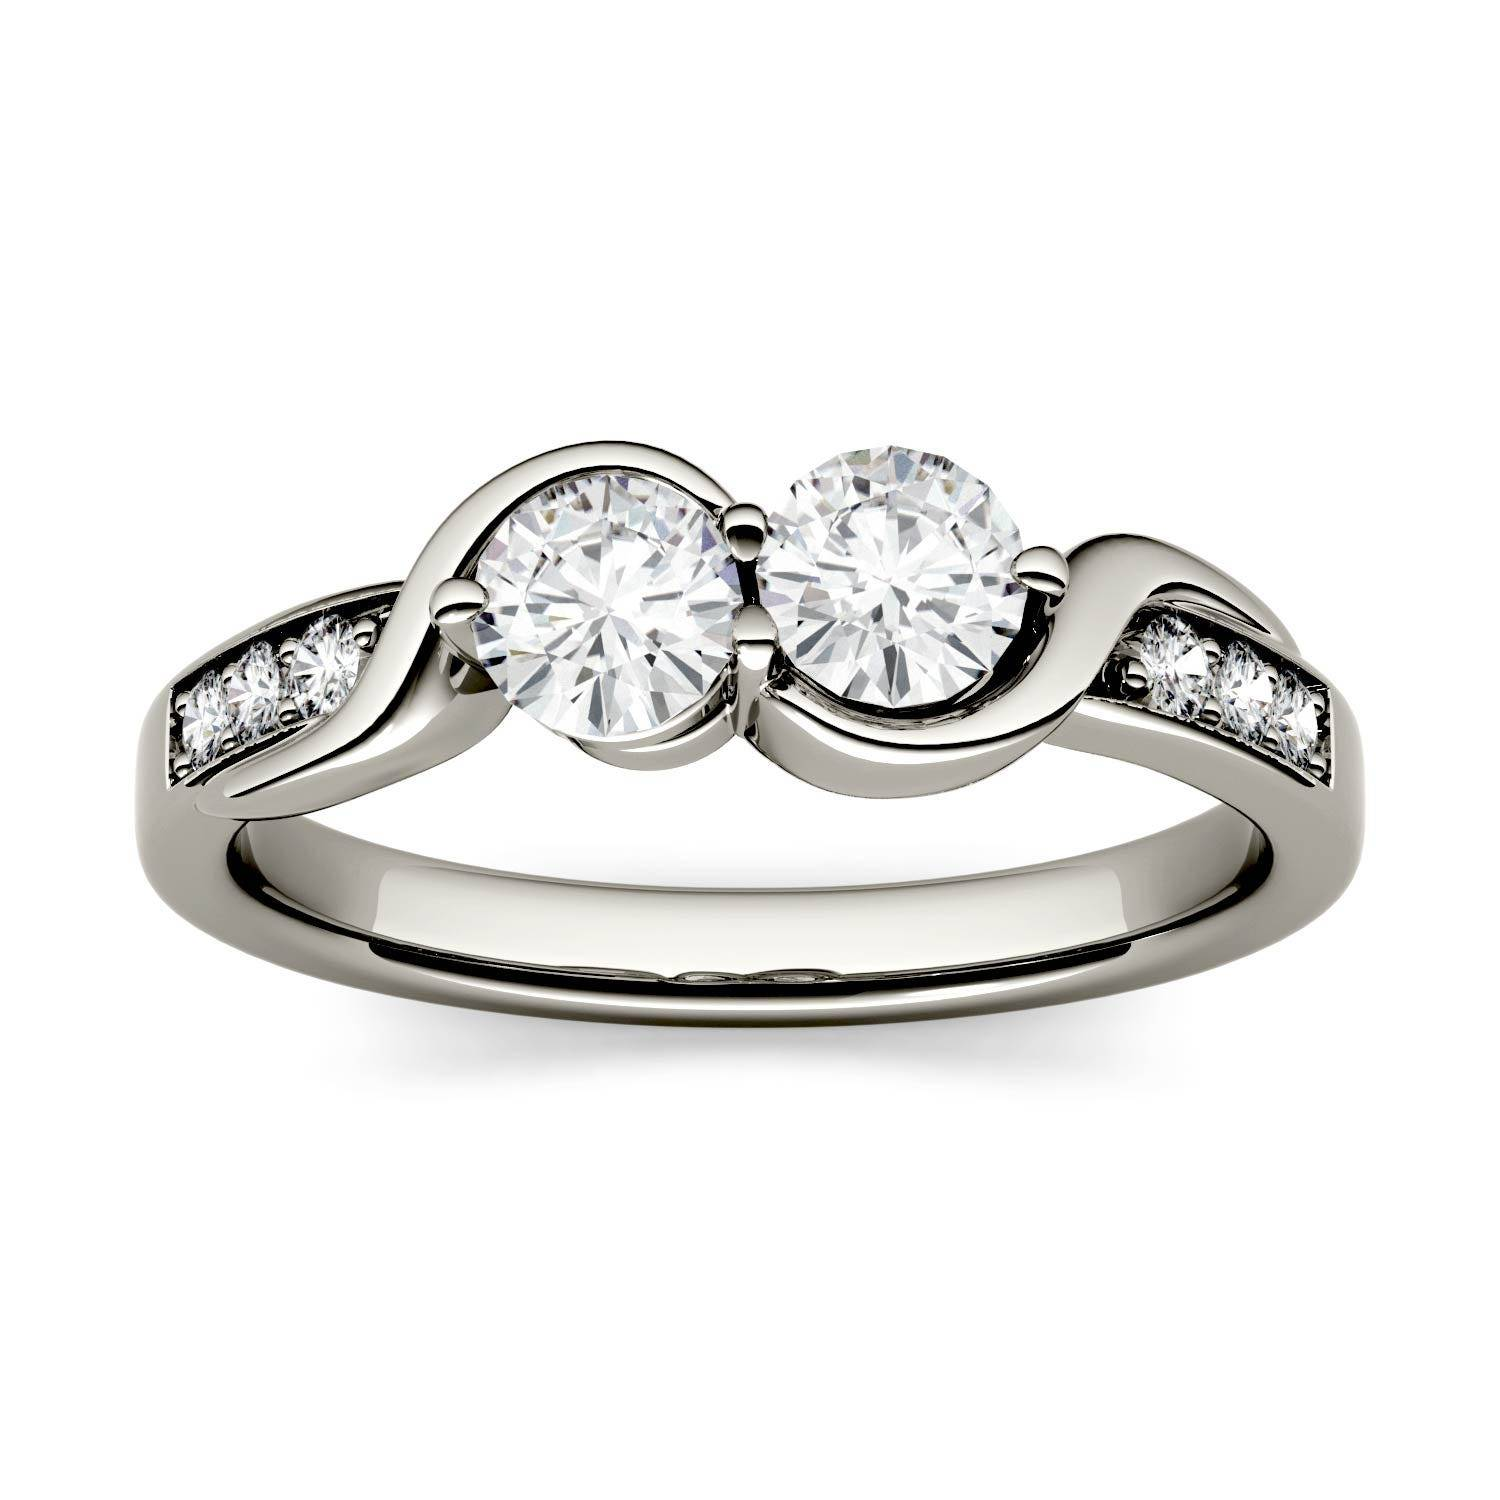 Charles & Colvard Two Stone Swirl with Side Accents Wedding Ring in 14K White Gold, Size: 9, 1.12CTW Round Forever One - Colorless Moissanite Charles & Colvard  - White Gold - Size: 9